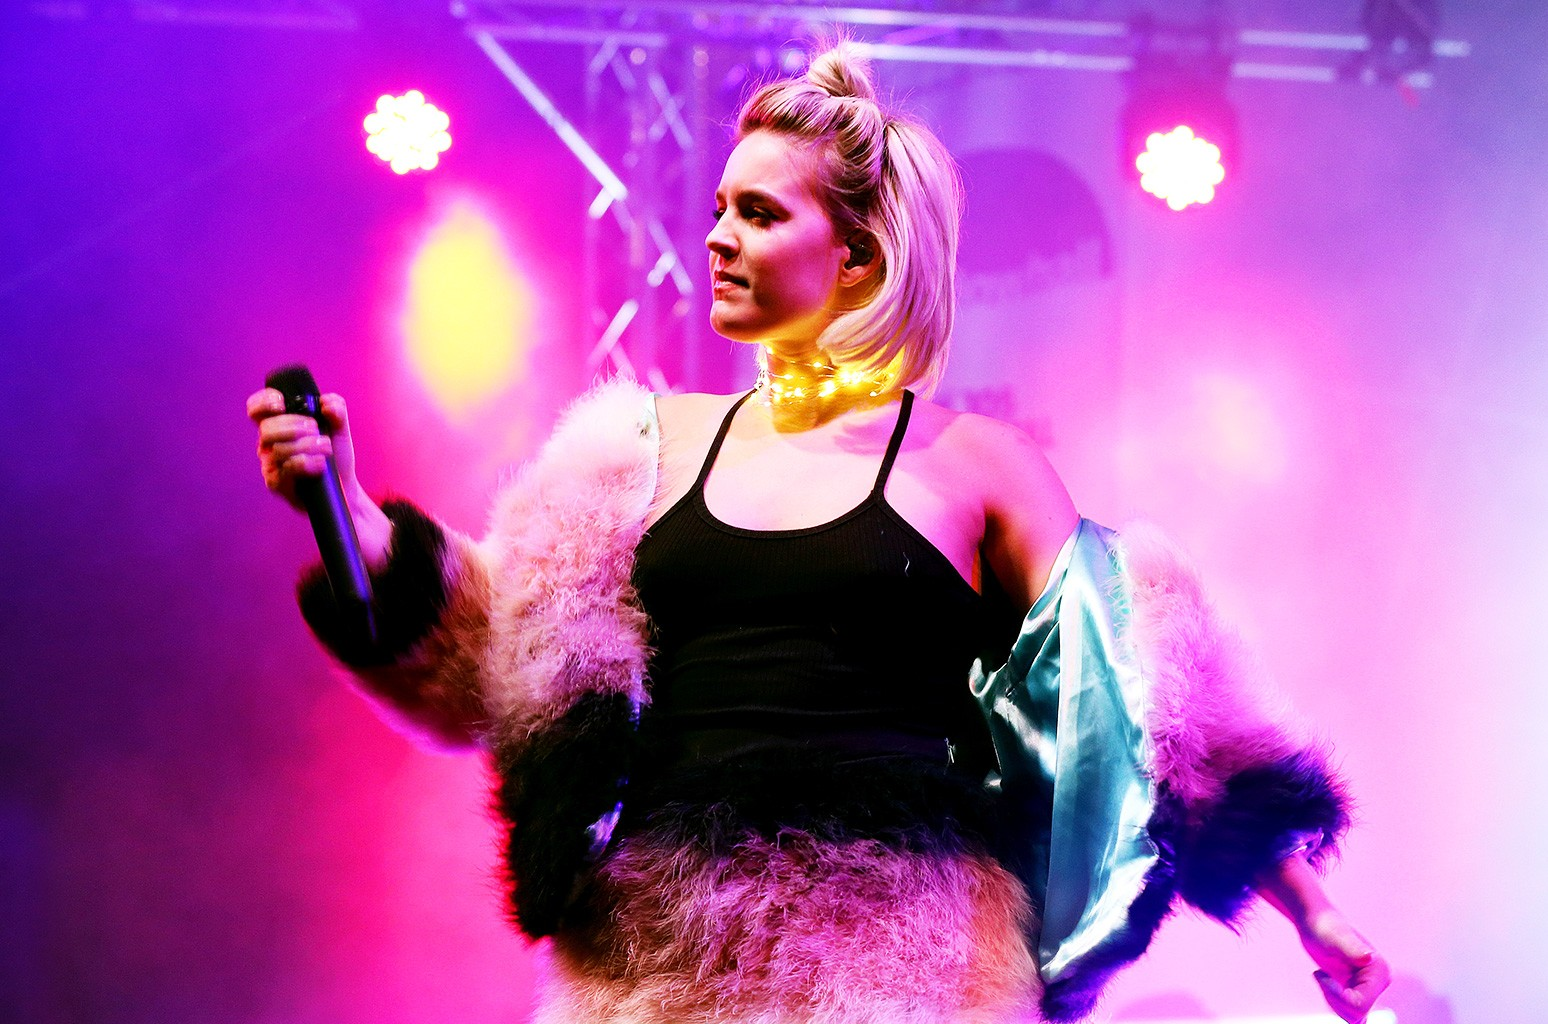 Anne-Marie performs at Meadowhall Presents Christmas Live at Meadowhall Shopping Centre on Nov. 3, 2016 in Sheffield, England.